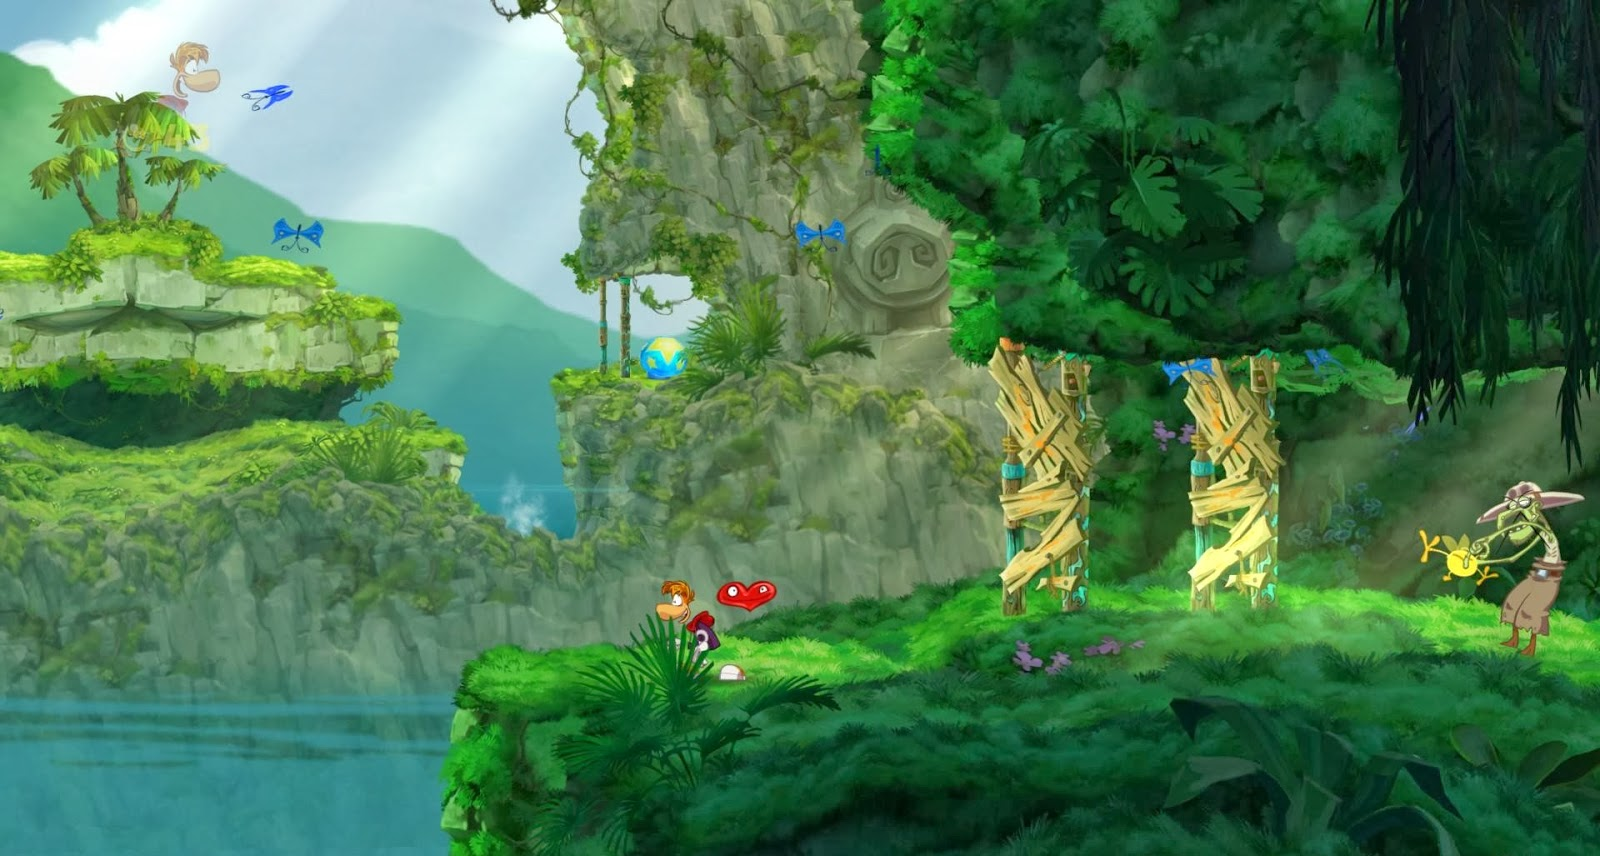 Rayman Origins Free Download for PC